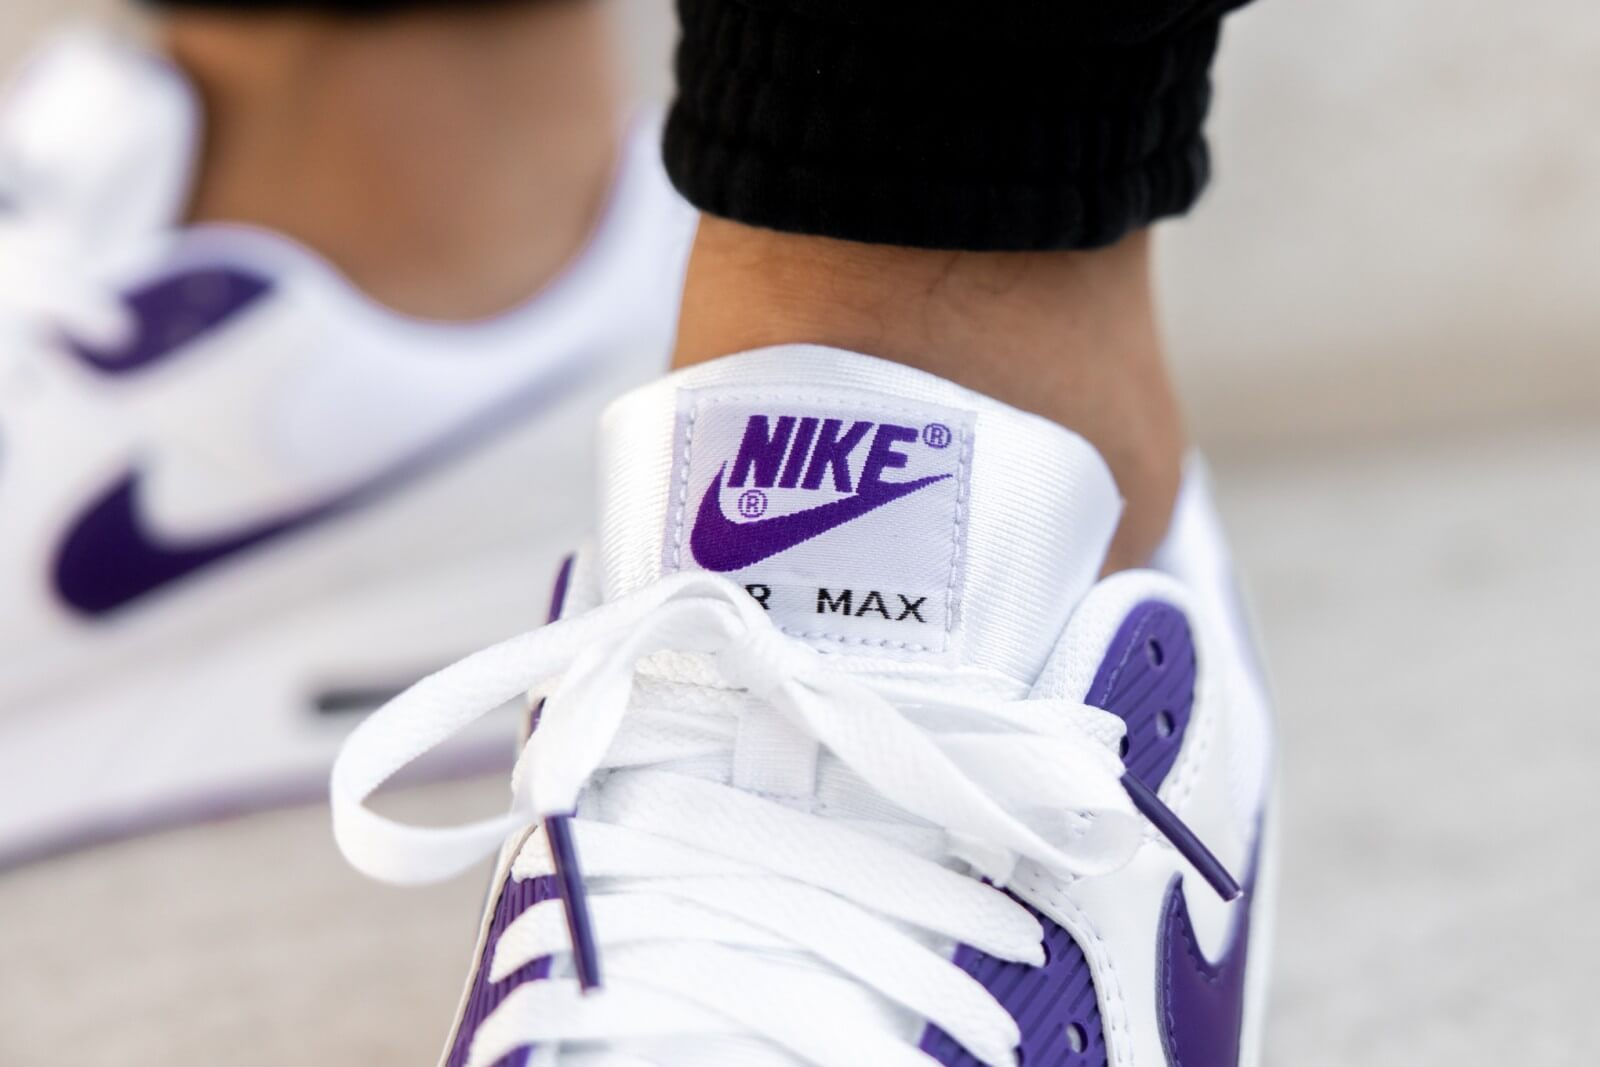 Tía laberinto ordenar  Nike Air Max 90 White/Voltage Purple-Black - CT1028-100